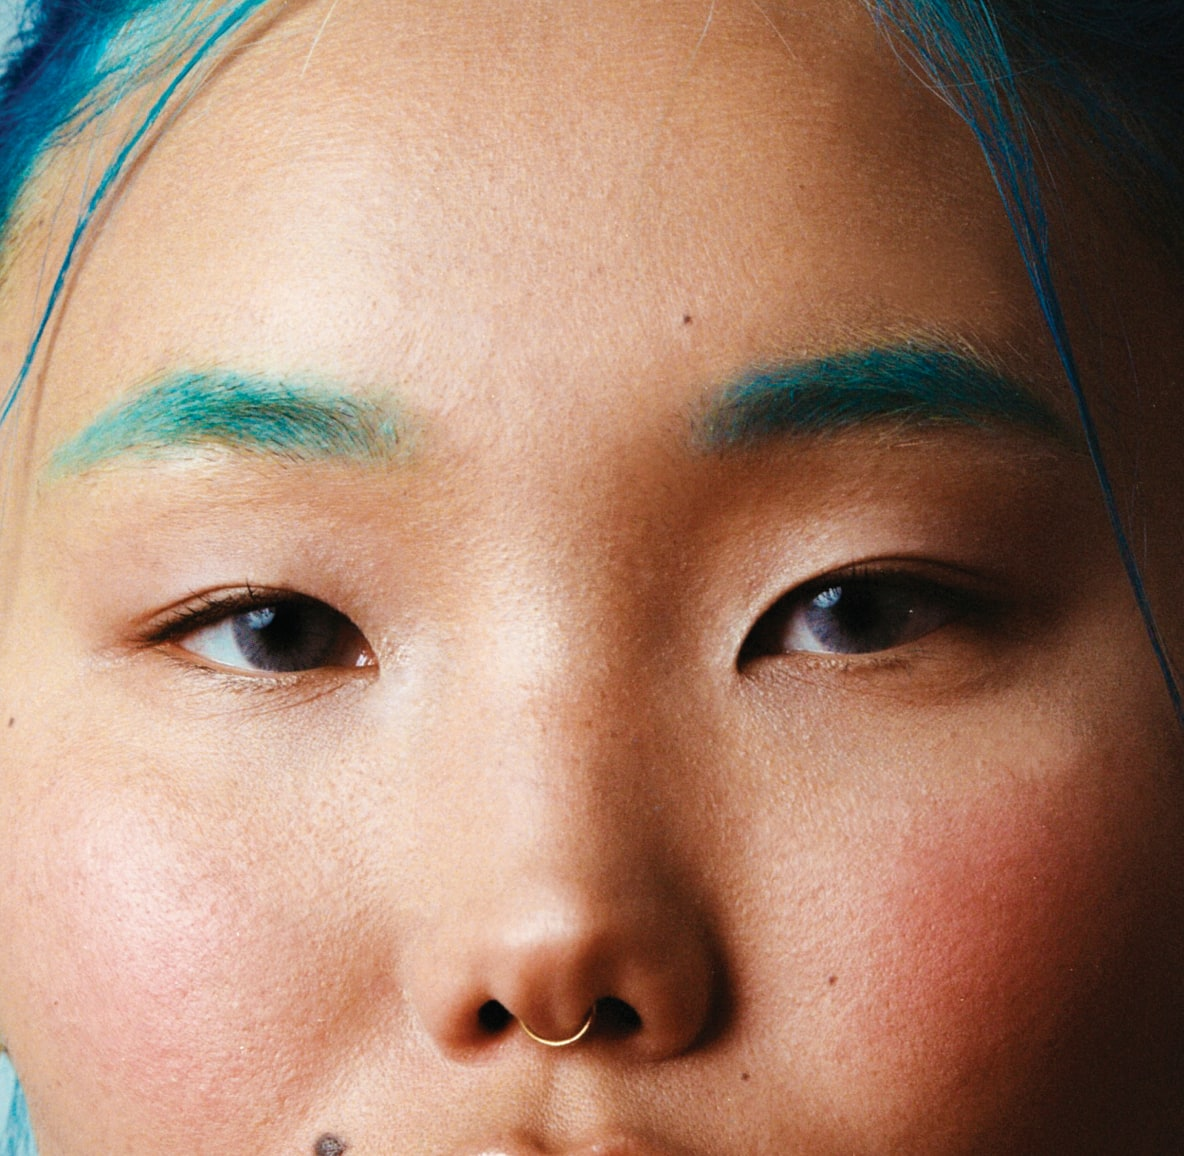 Close up of woman with blue hair wearing bright blue eyeshadow on her eyebrows